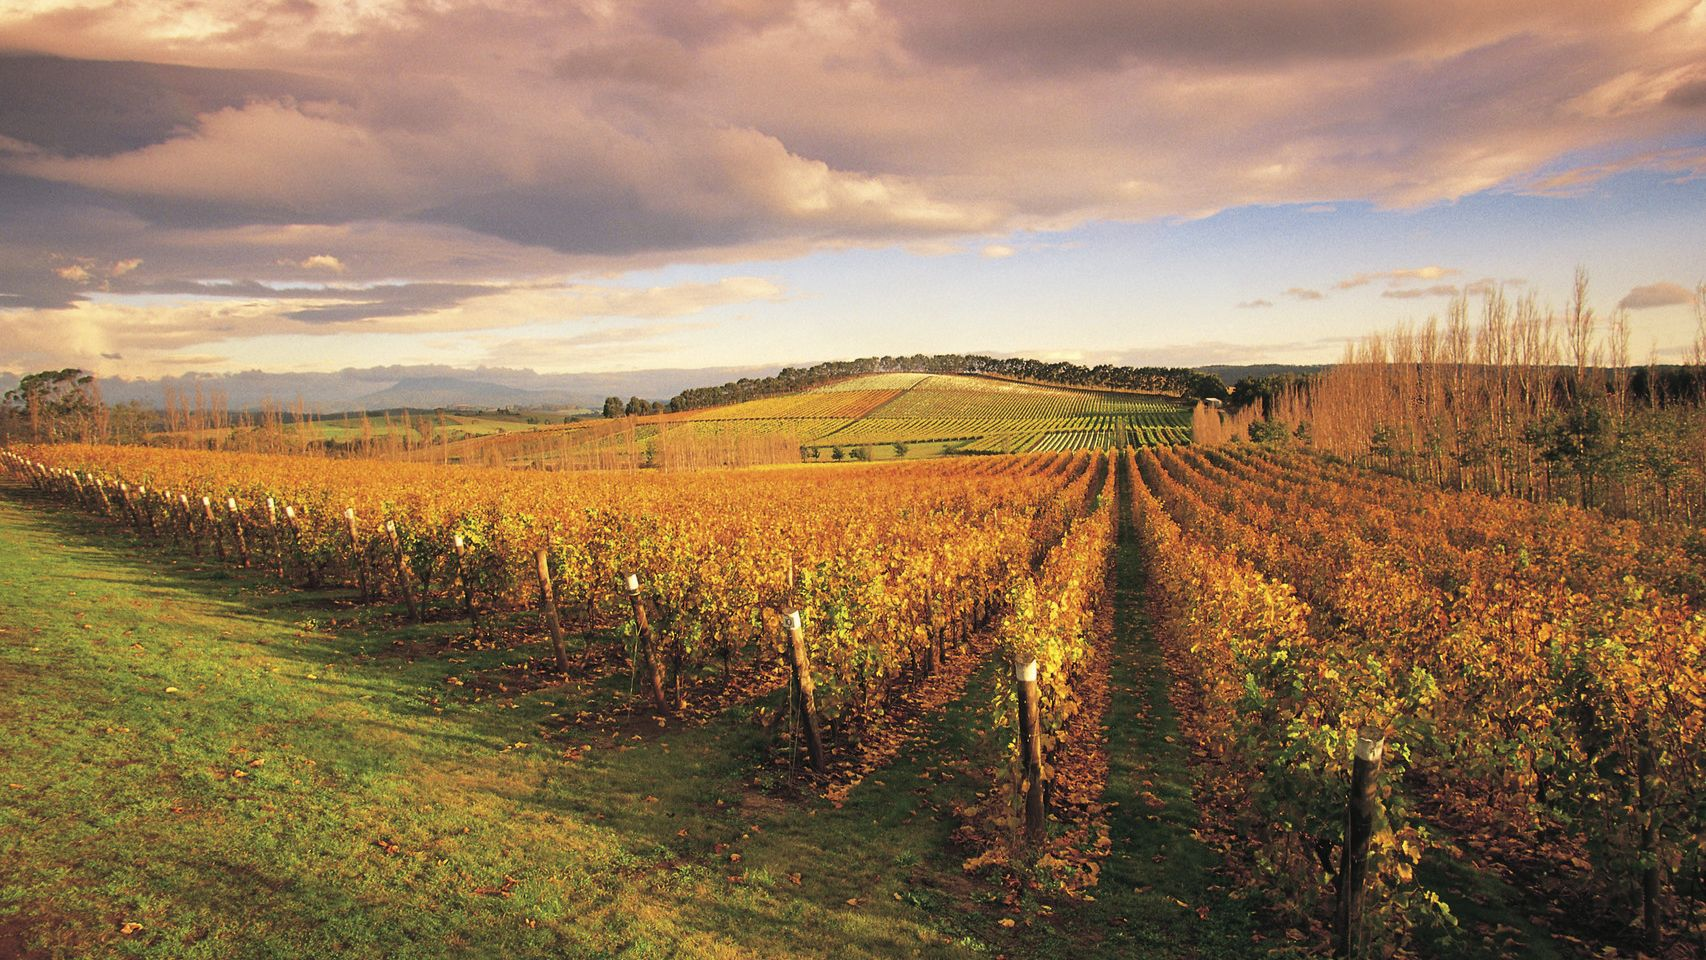 MONA and Wine Experience Tour